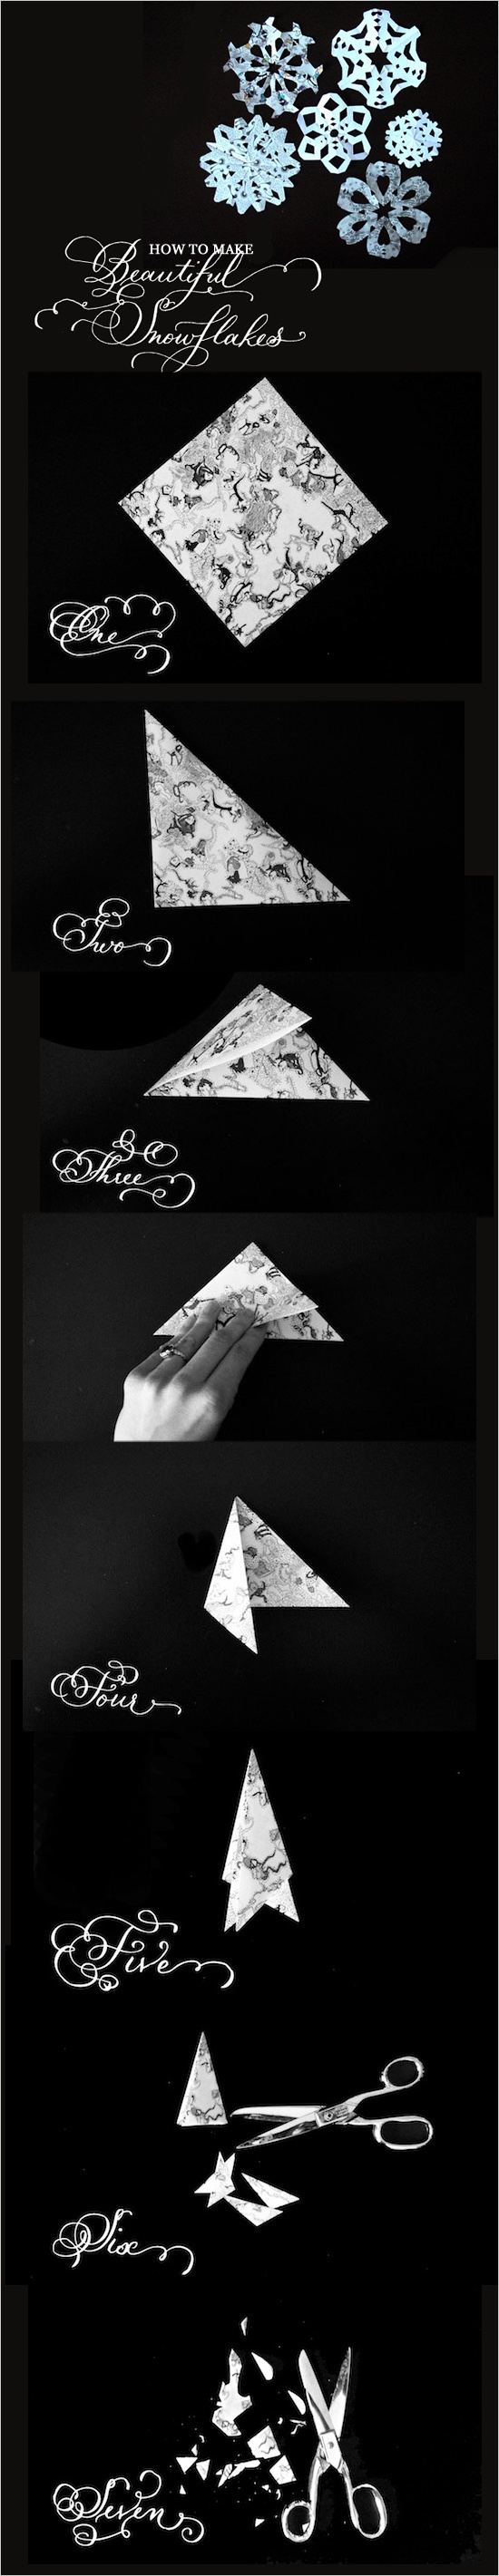 How To Make Paper Snow Flakes! (via @Amy & Jocey)